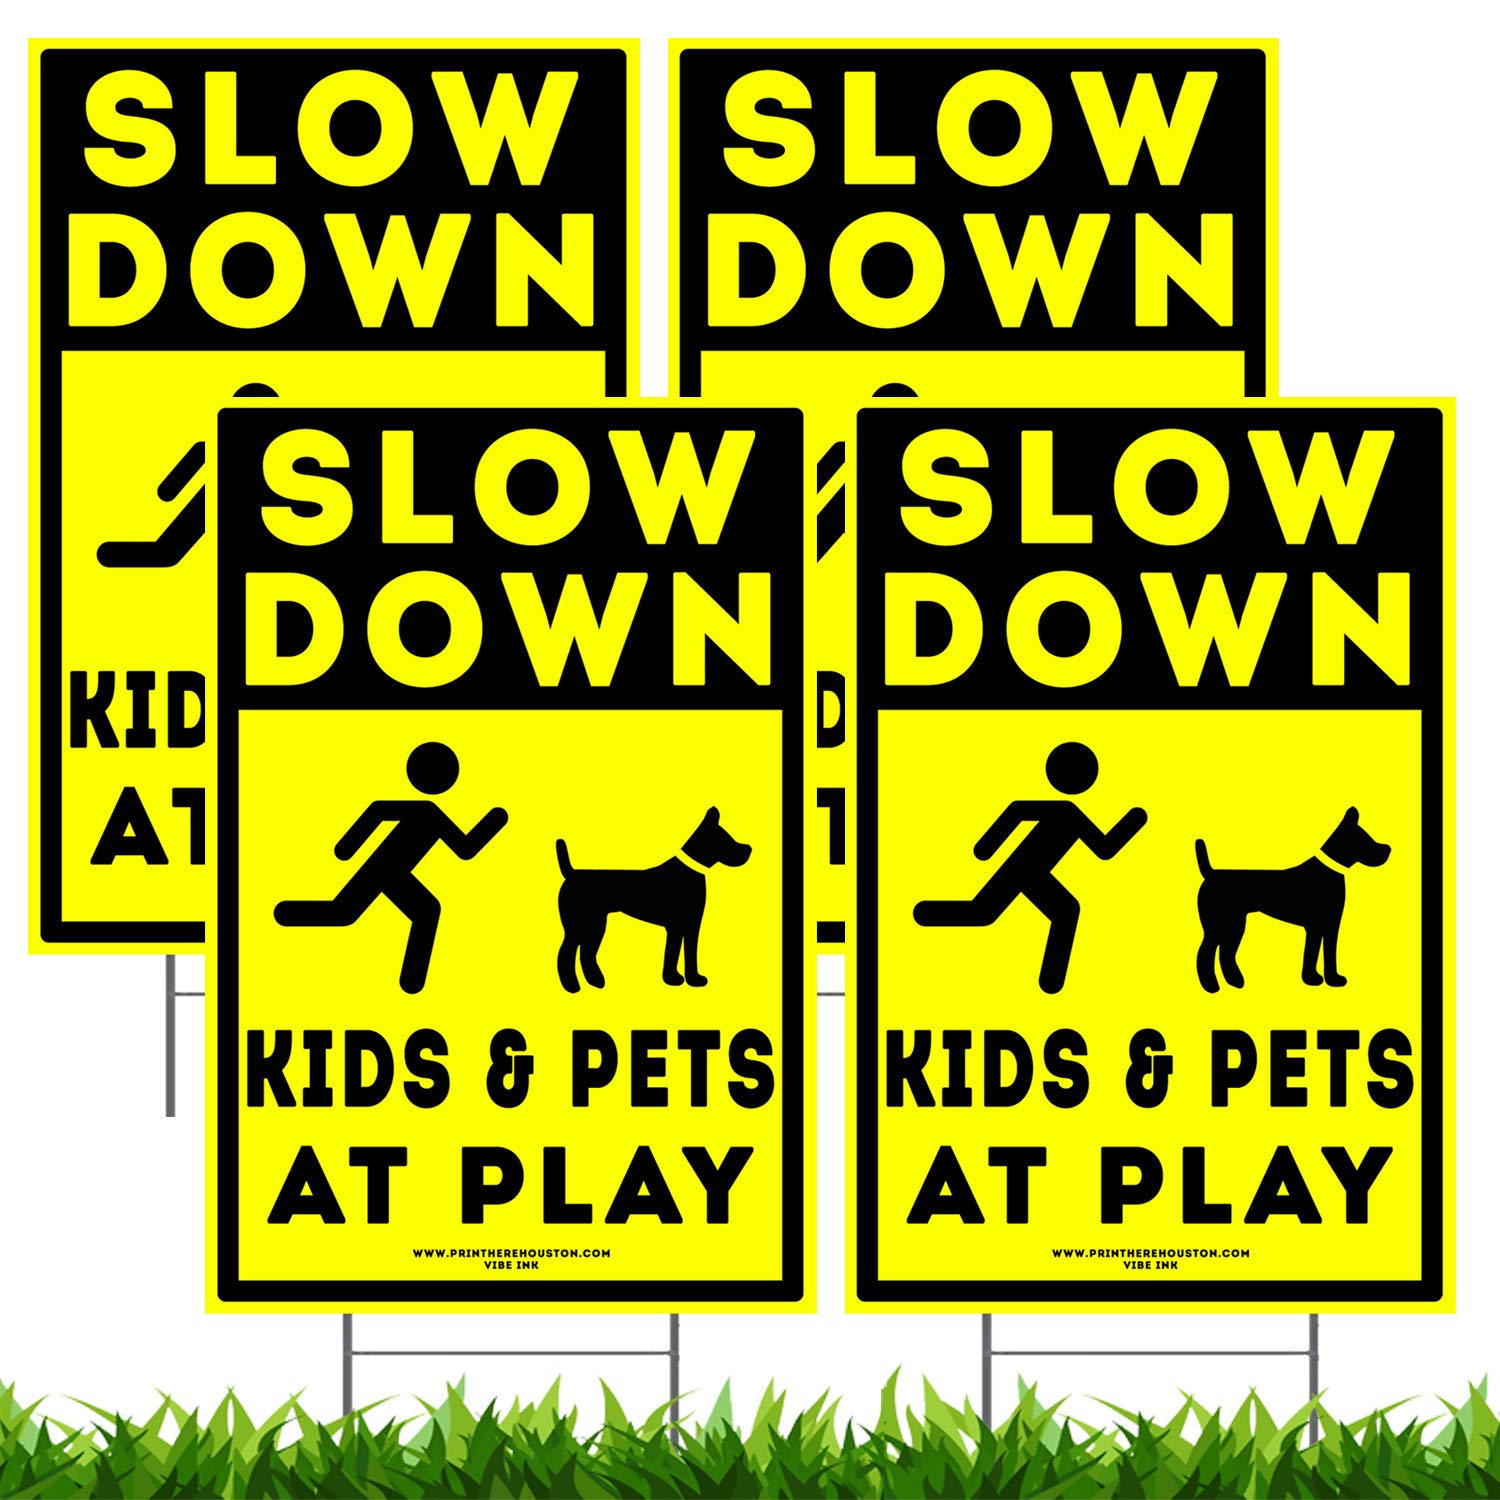 Vibe Ink 12'' x 18'' Slow Down - Kids & Pets at Play Neighborhood Street Caution Yard Signs - Lawn Sign w/Metal Stake (4)